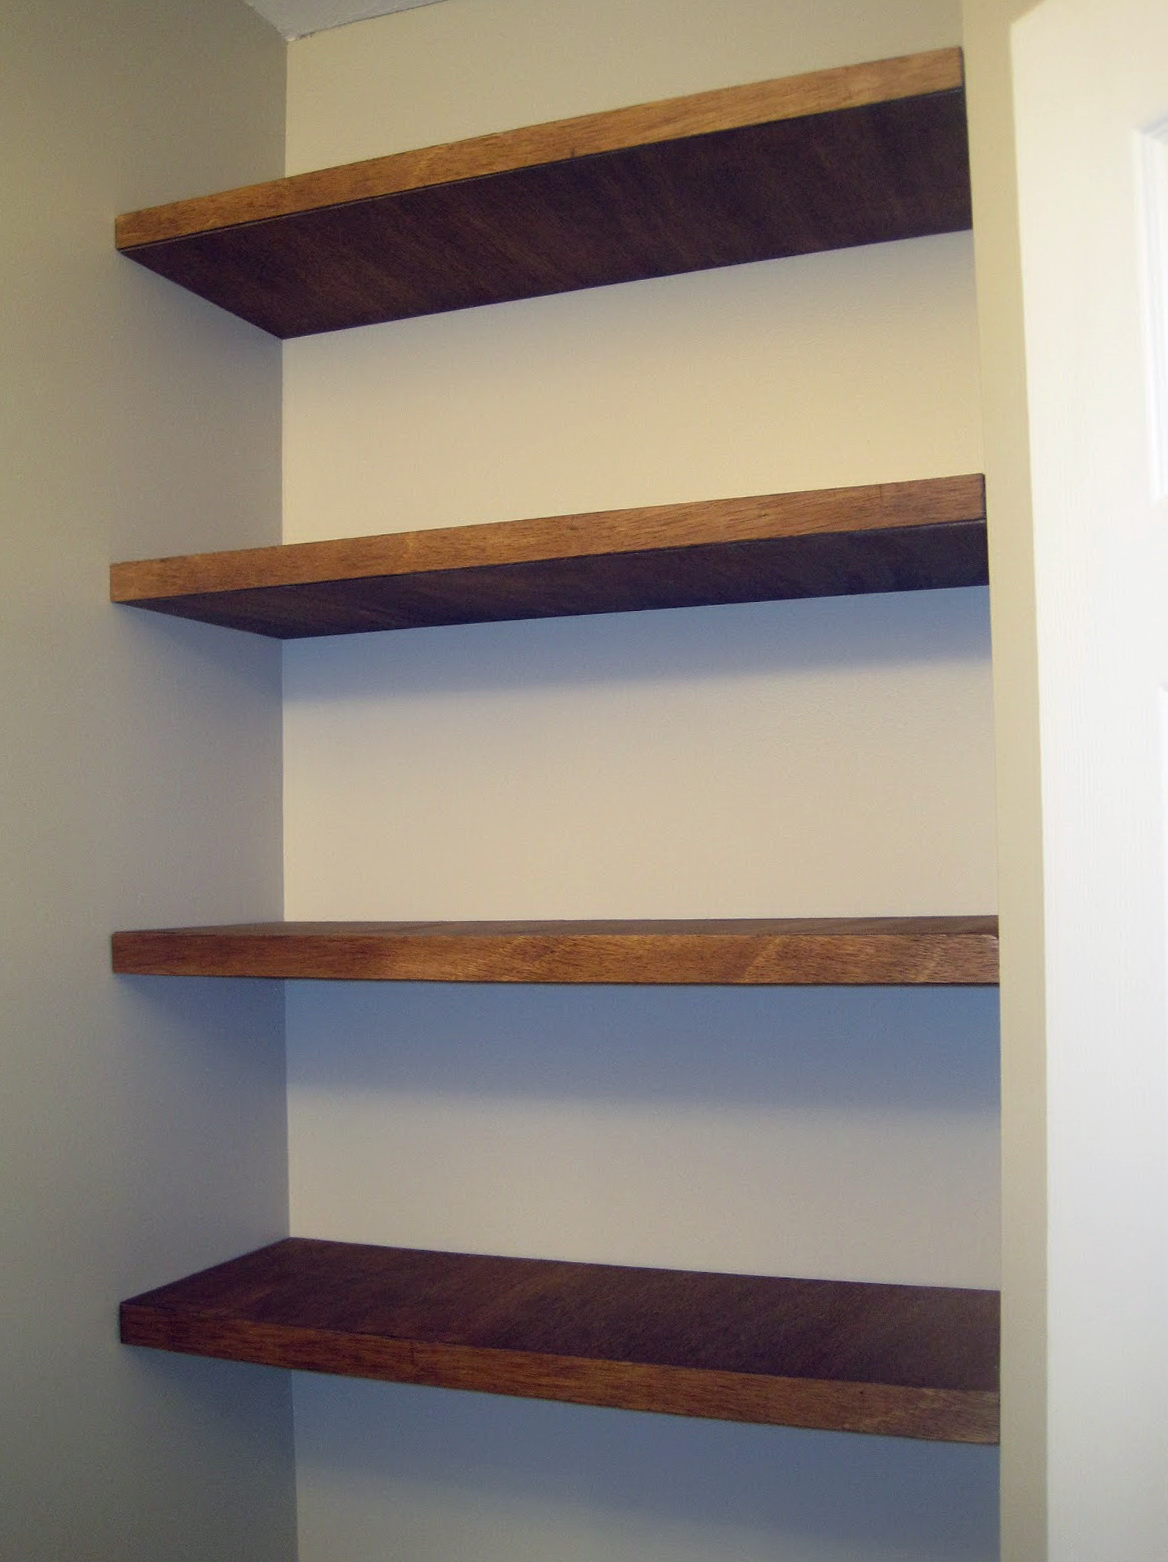 Diy Wood Wall Shelves